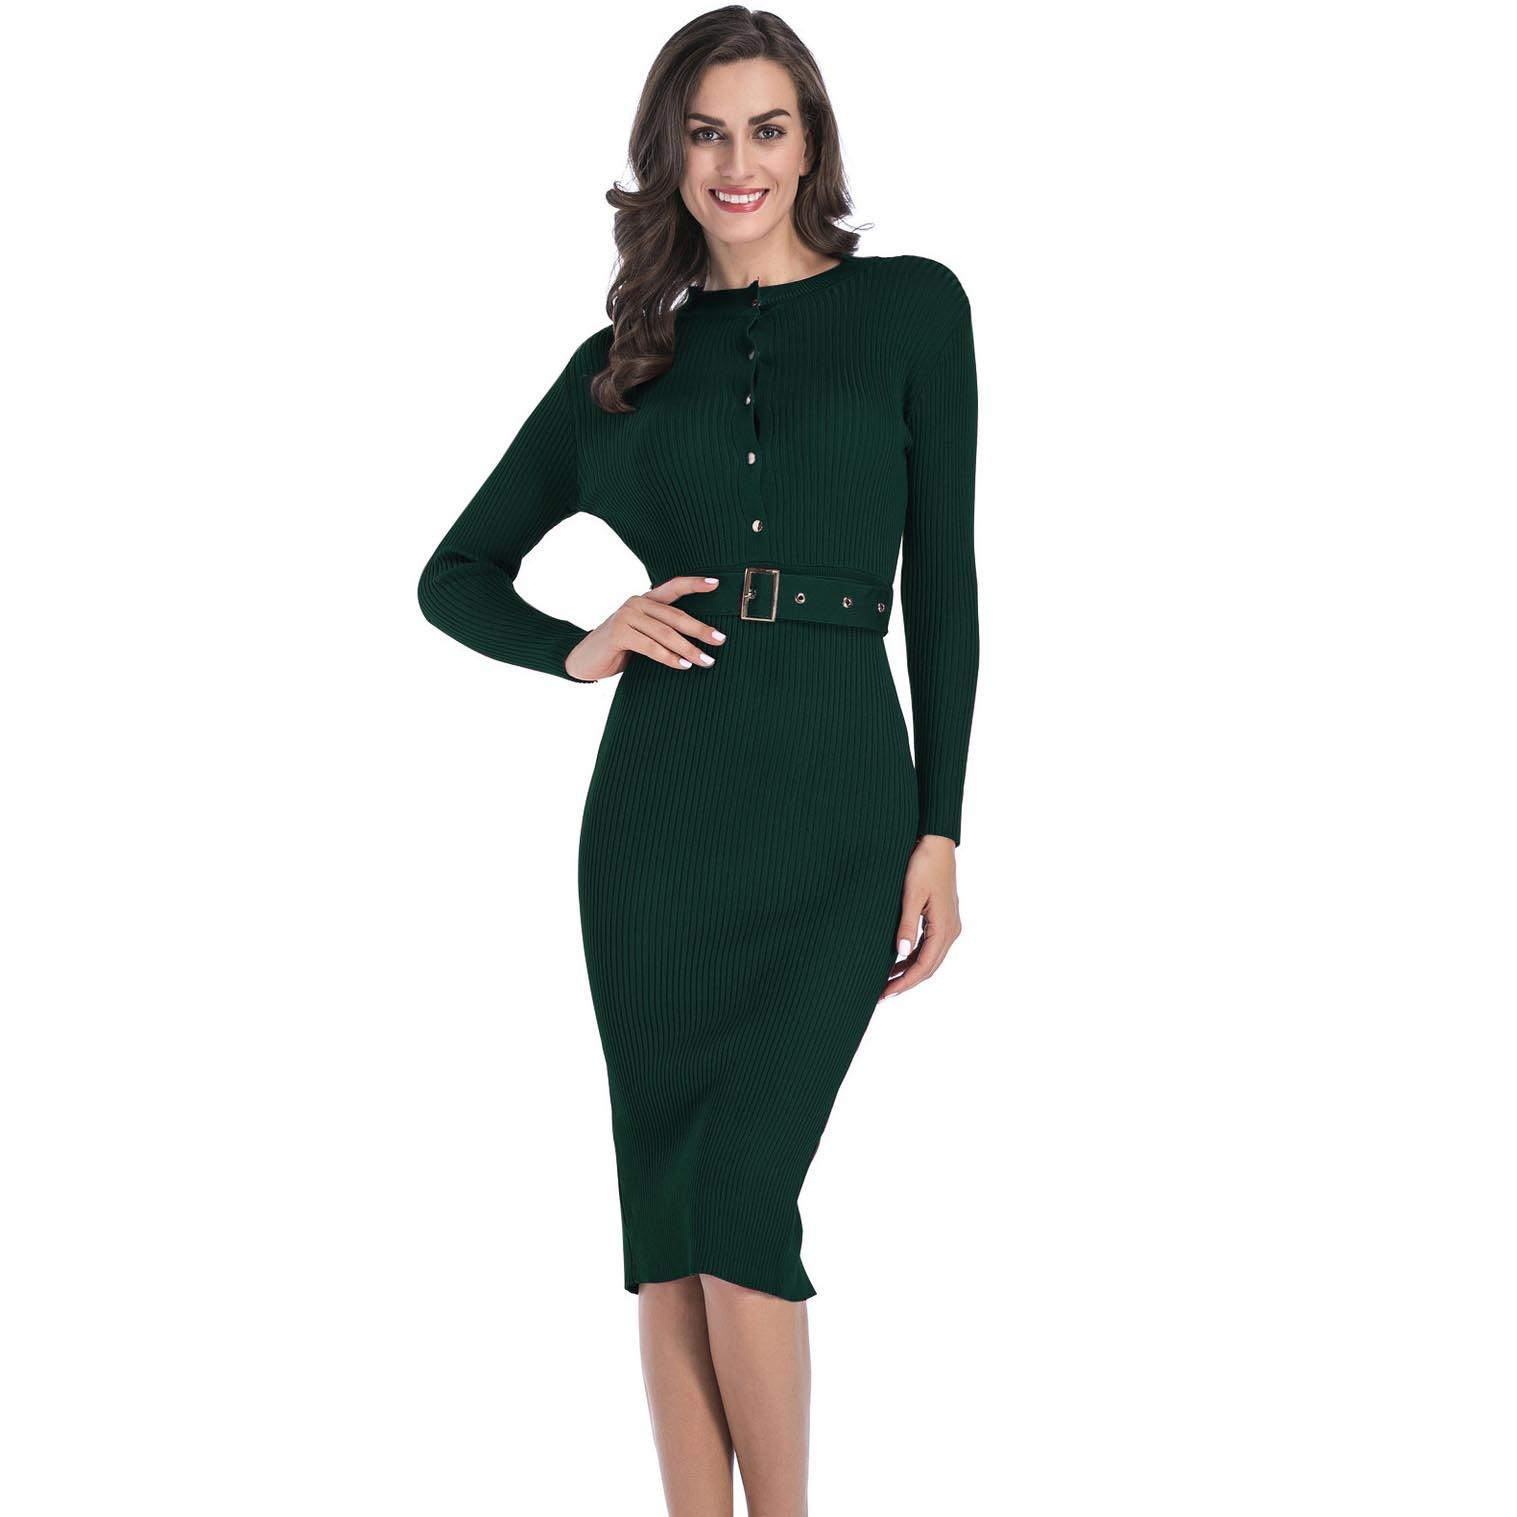 5f2fae85232 Womens Business Dresses Knit Dress Female Solid Color with Belt Long ...